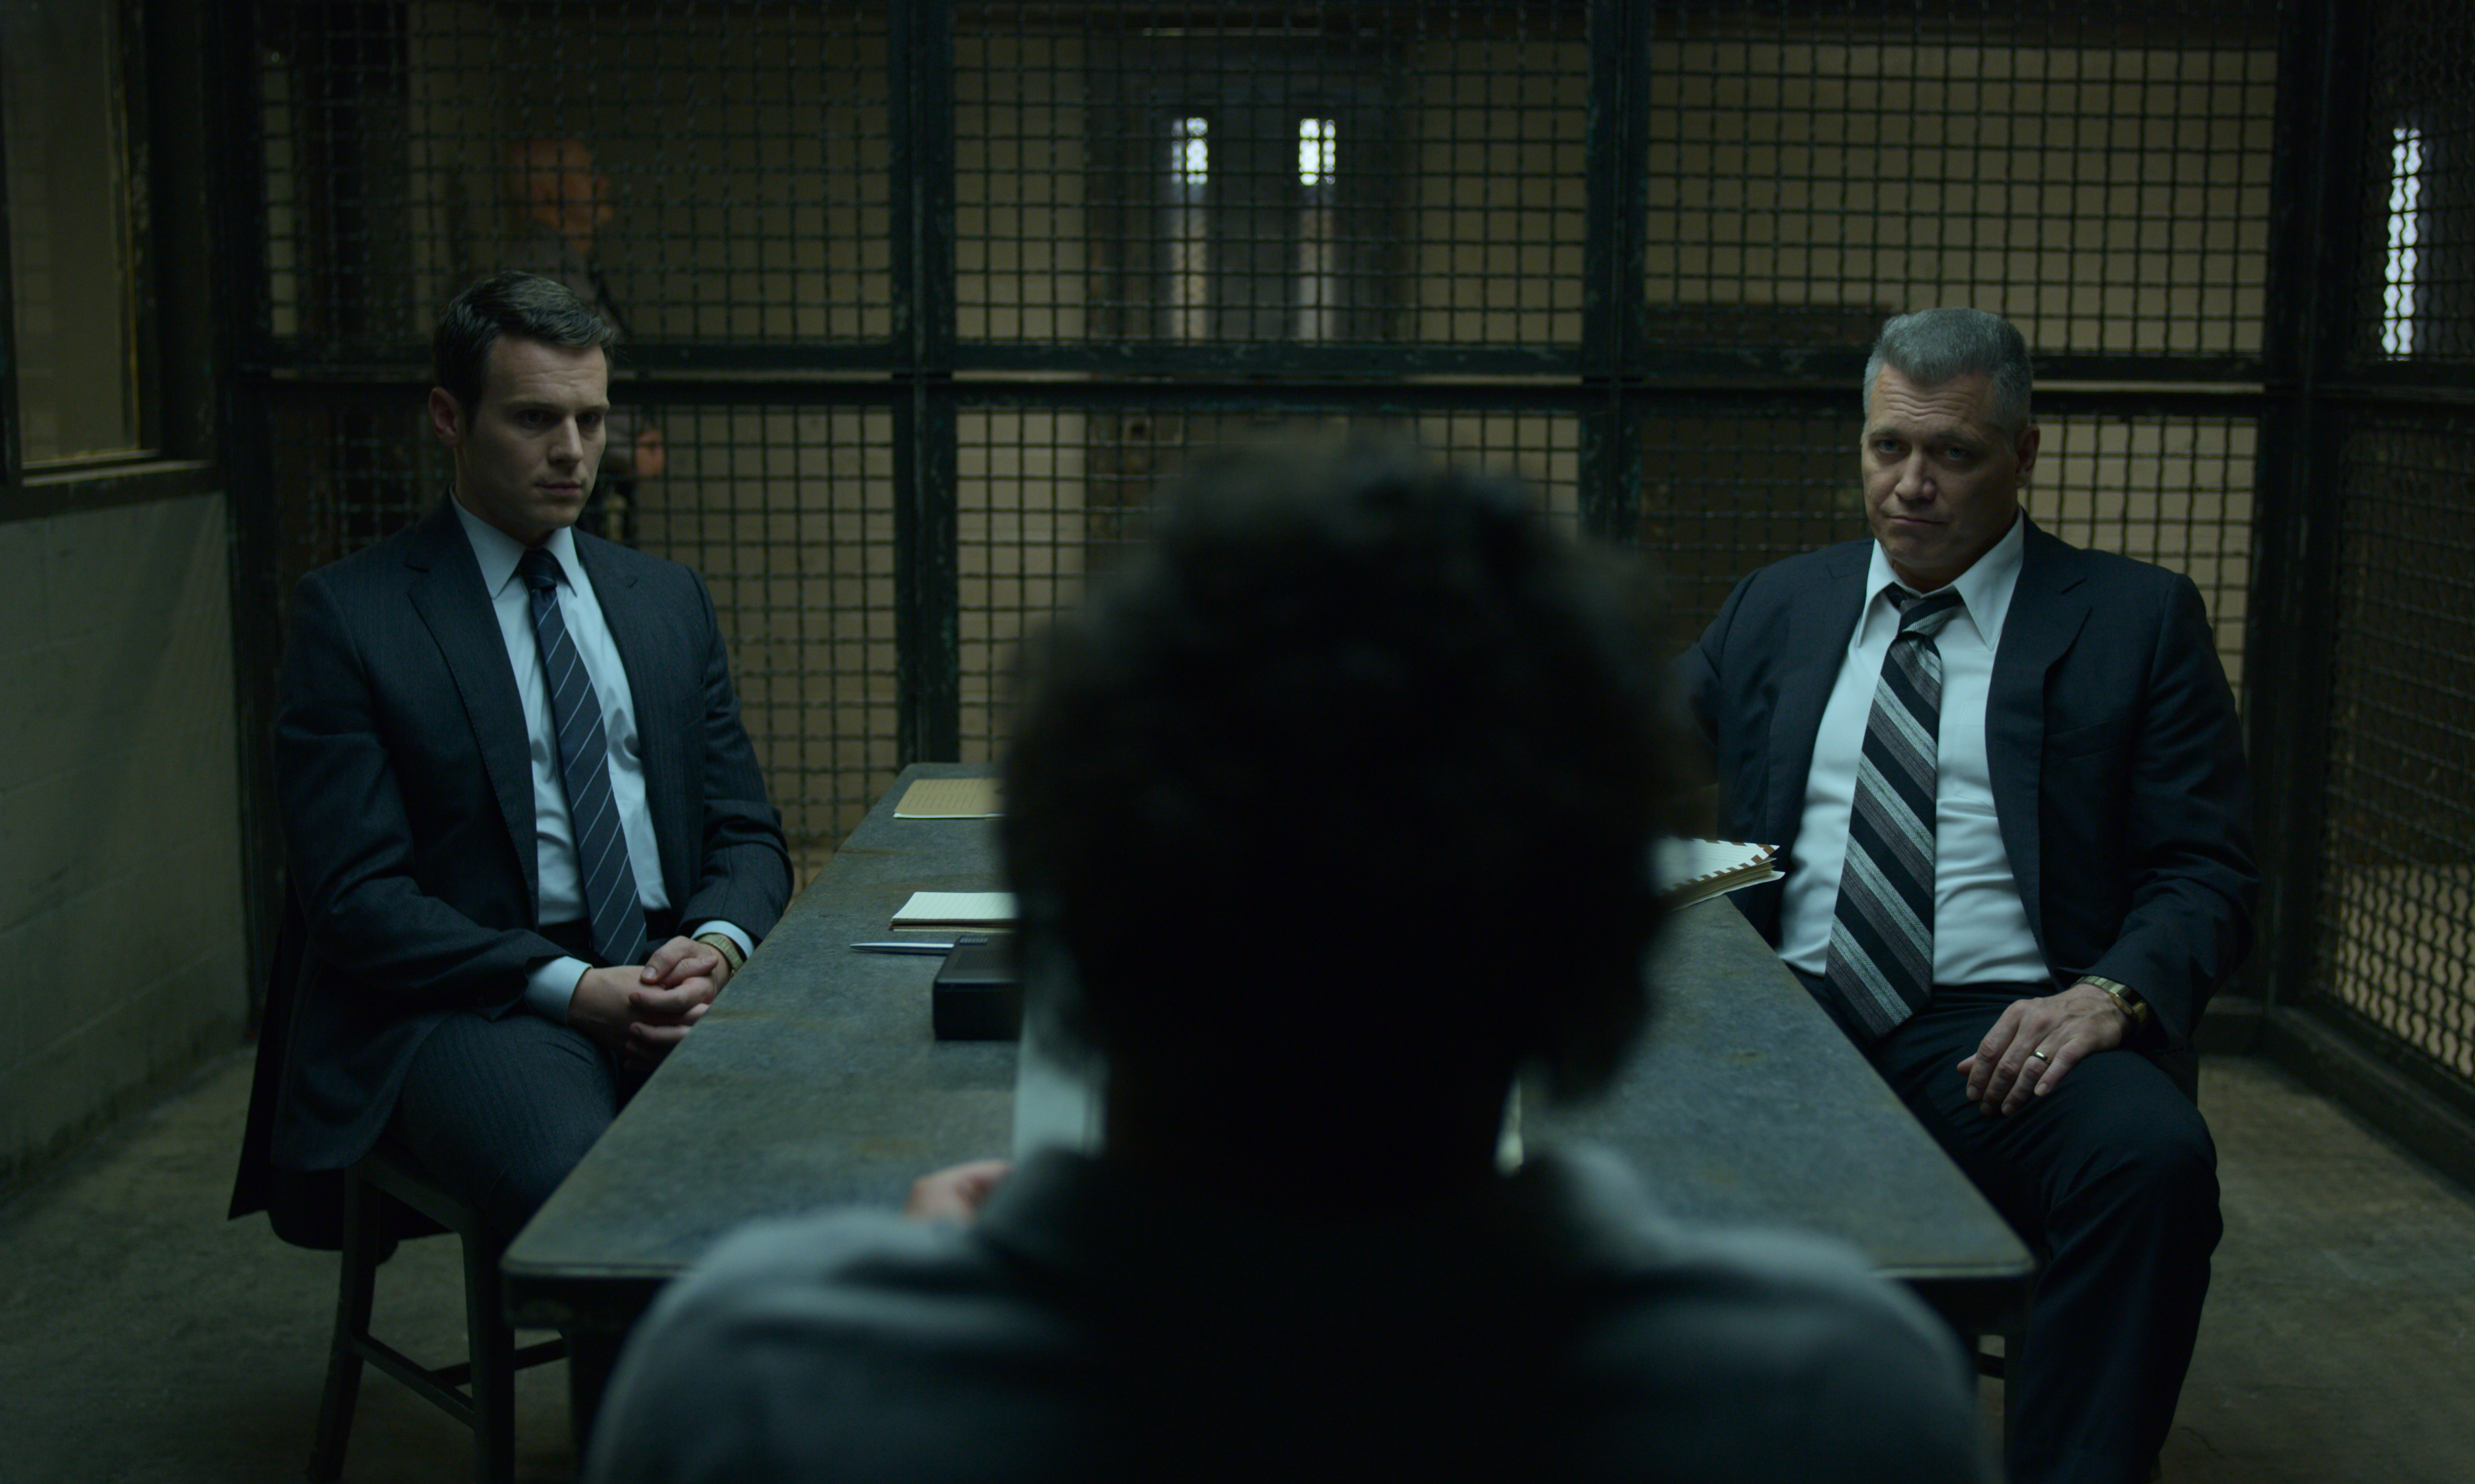 Will there be a Mindhunter season 3?